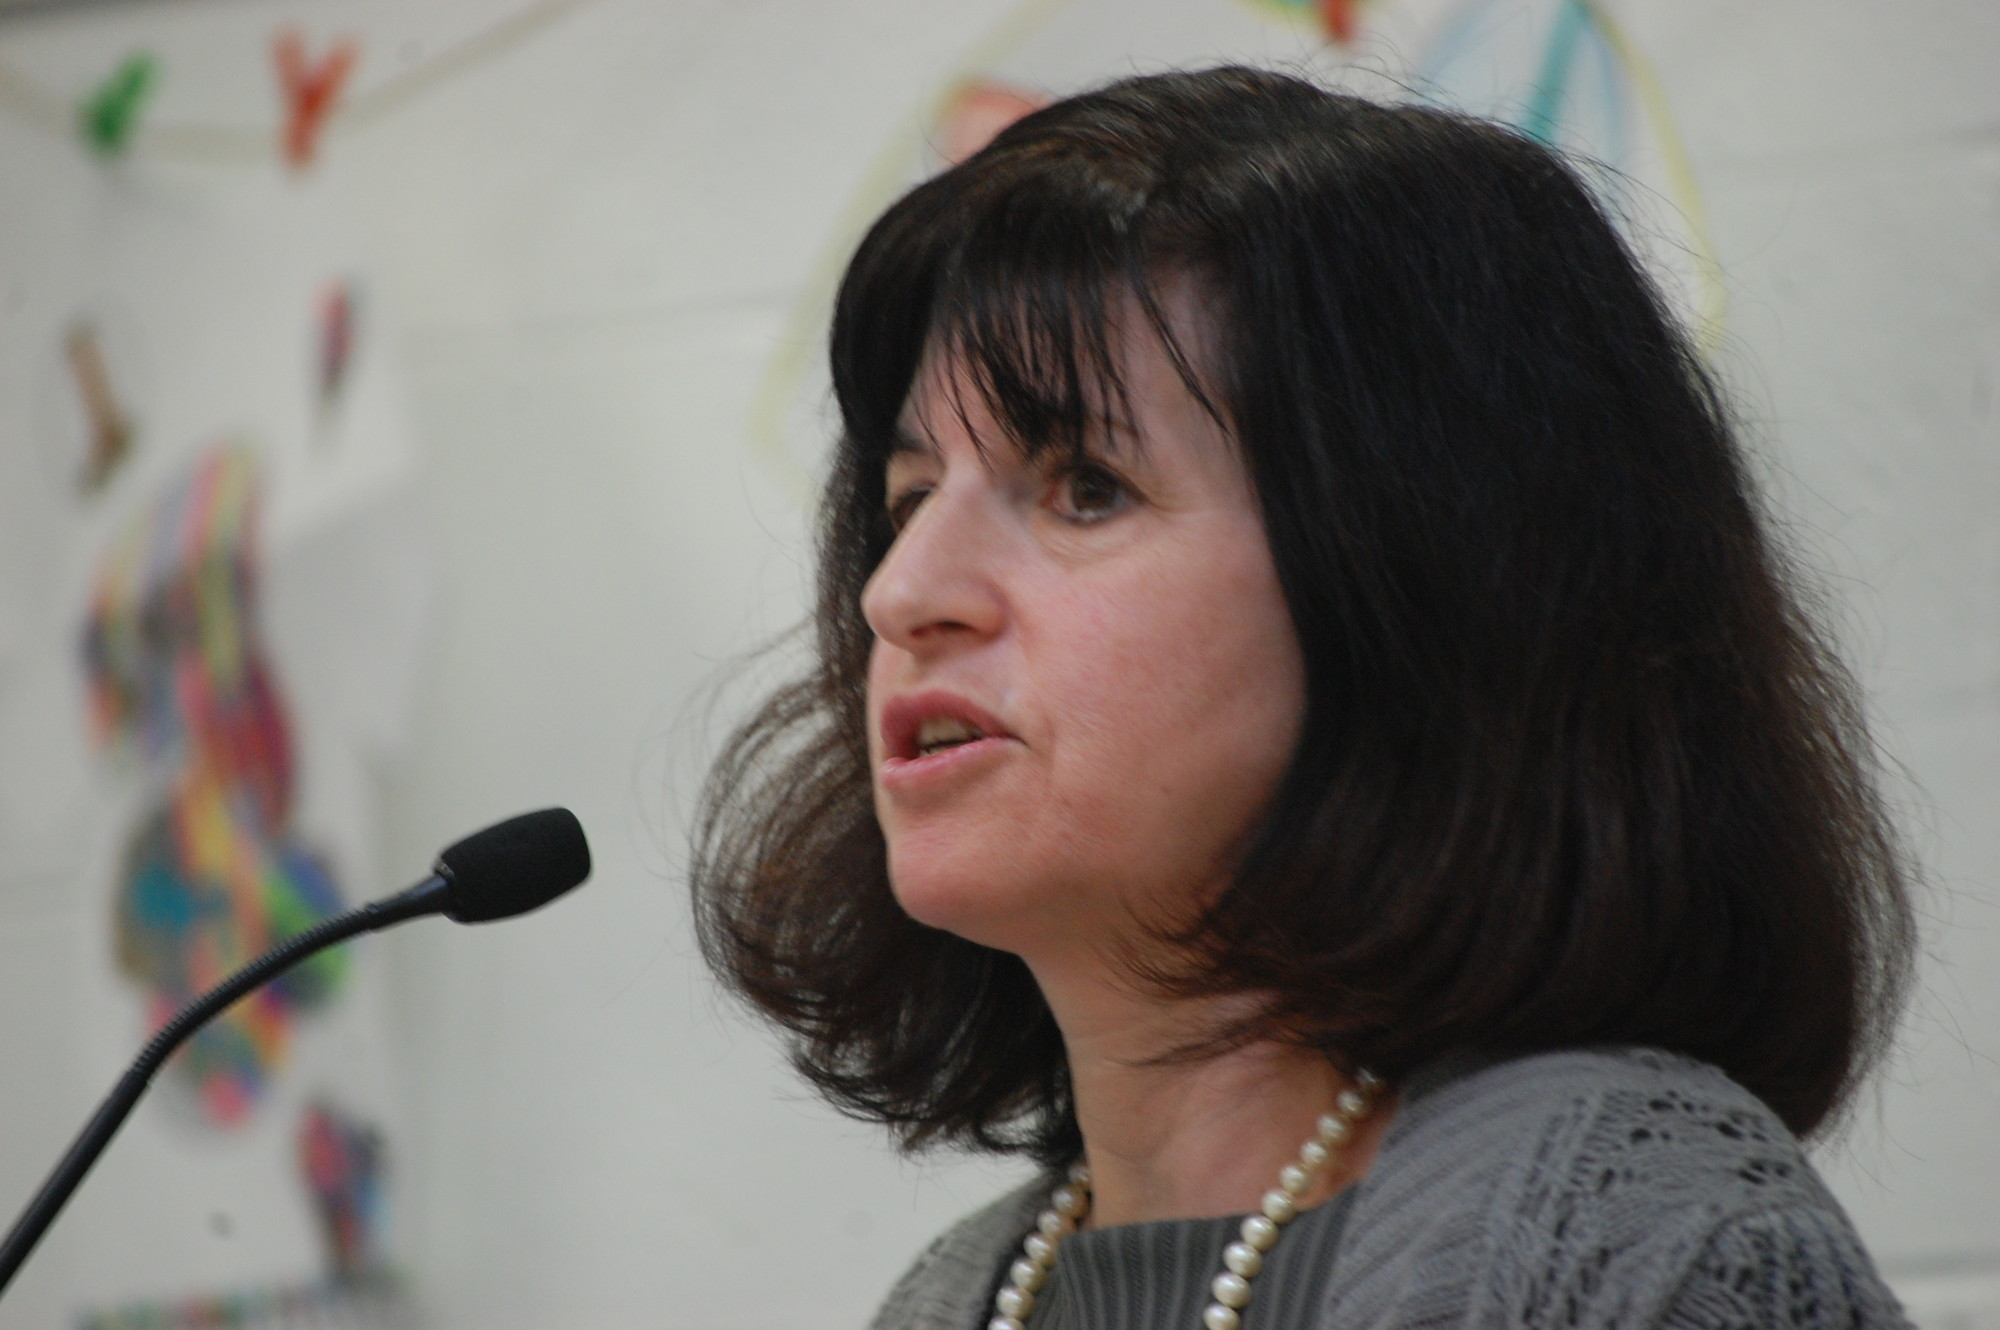 High School Board President Elise Antonelli called for changes to the law that funds charter schools by taking money away from public education.